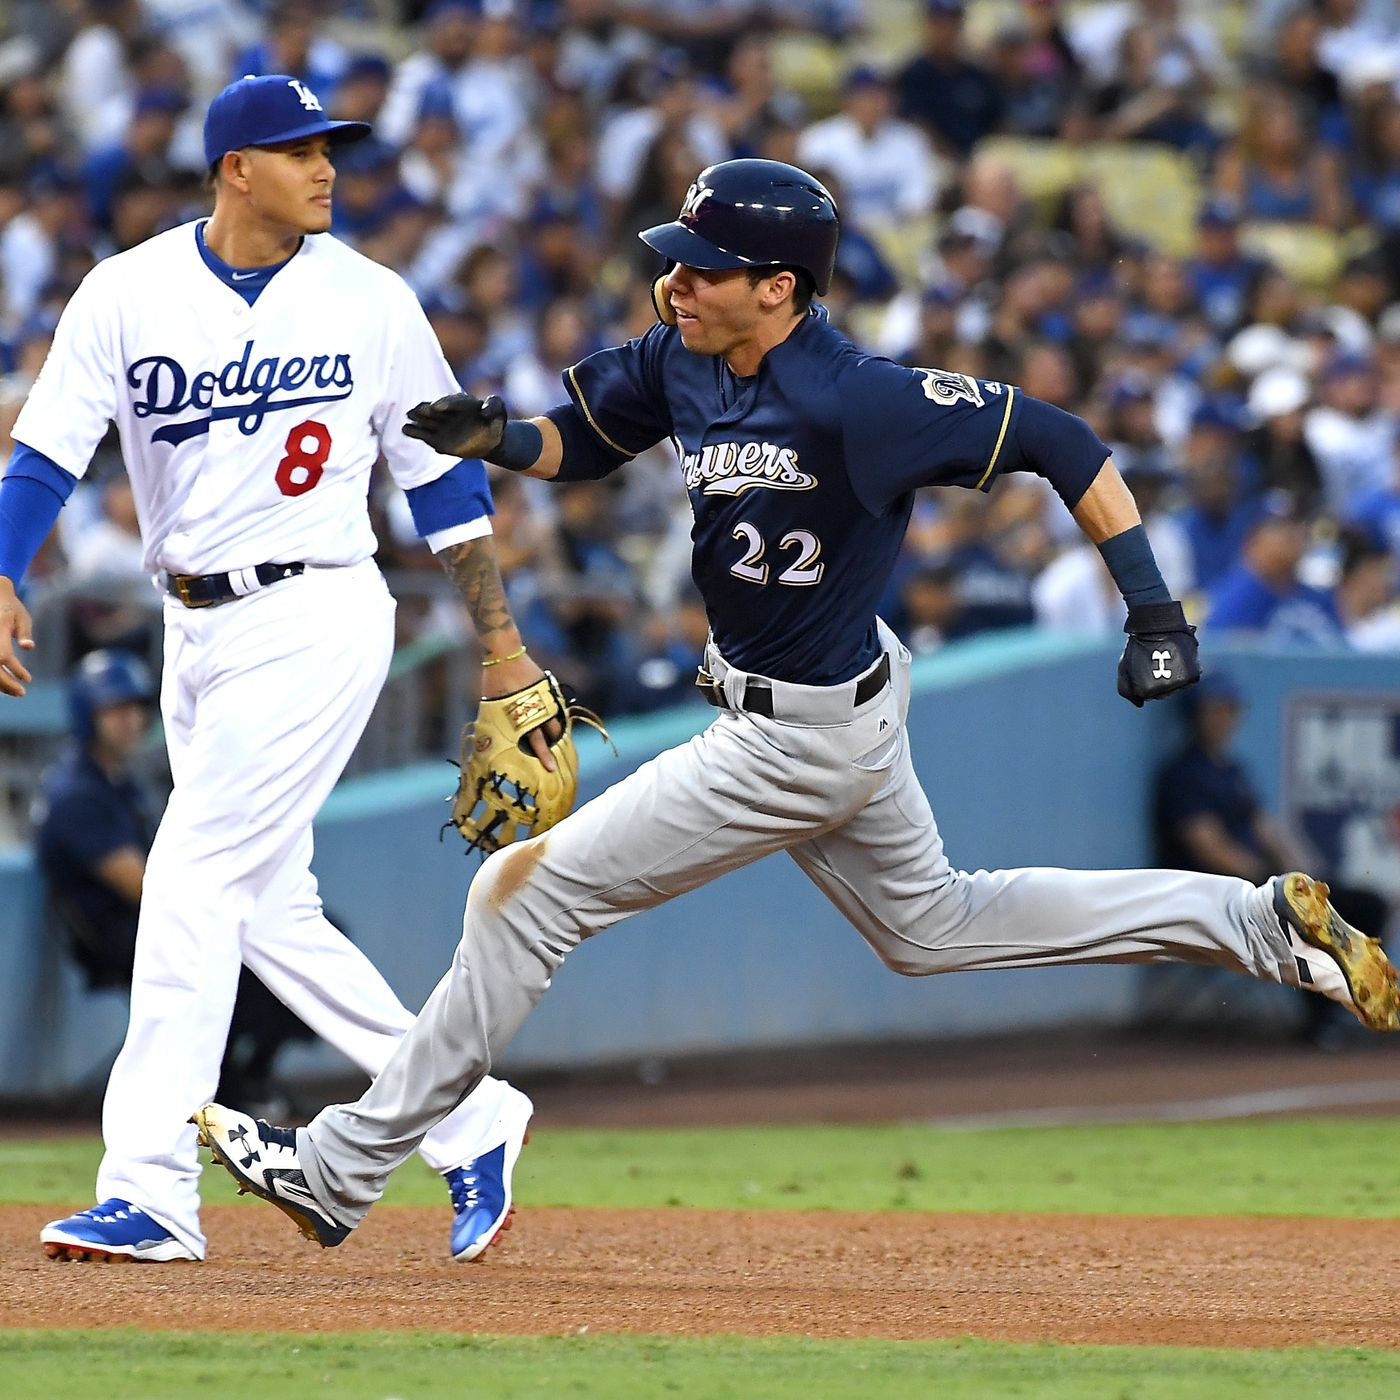 MLB playoff schedule 2018: Start times & TV info for League